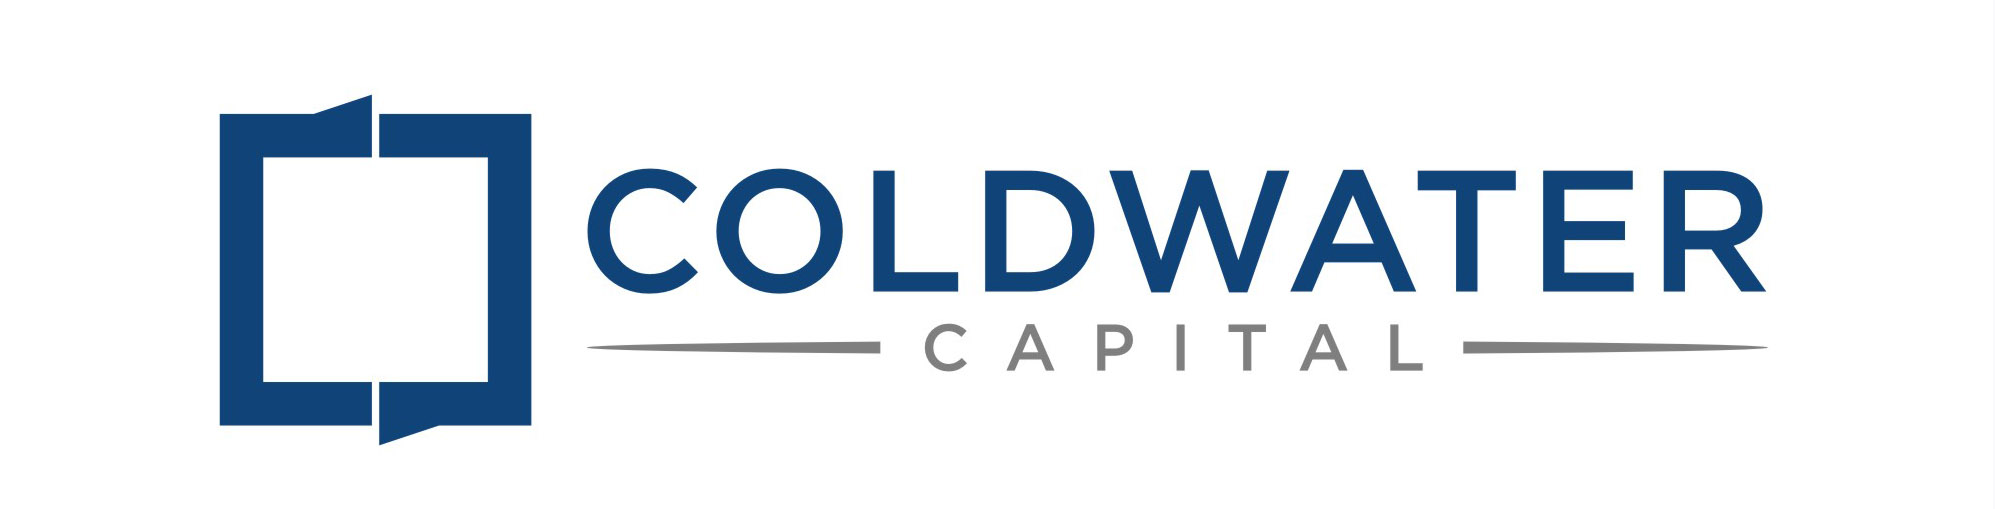 Coldwater Capital